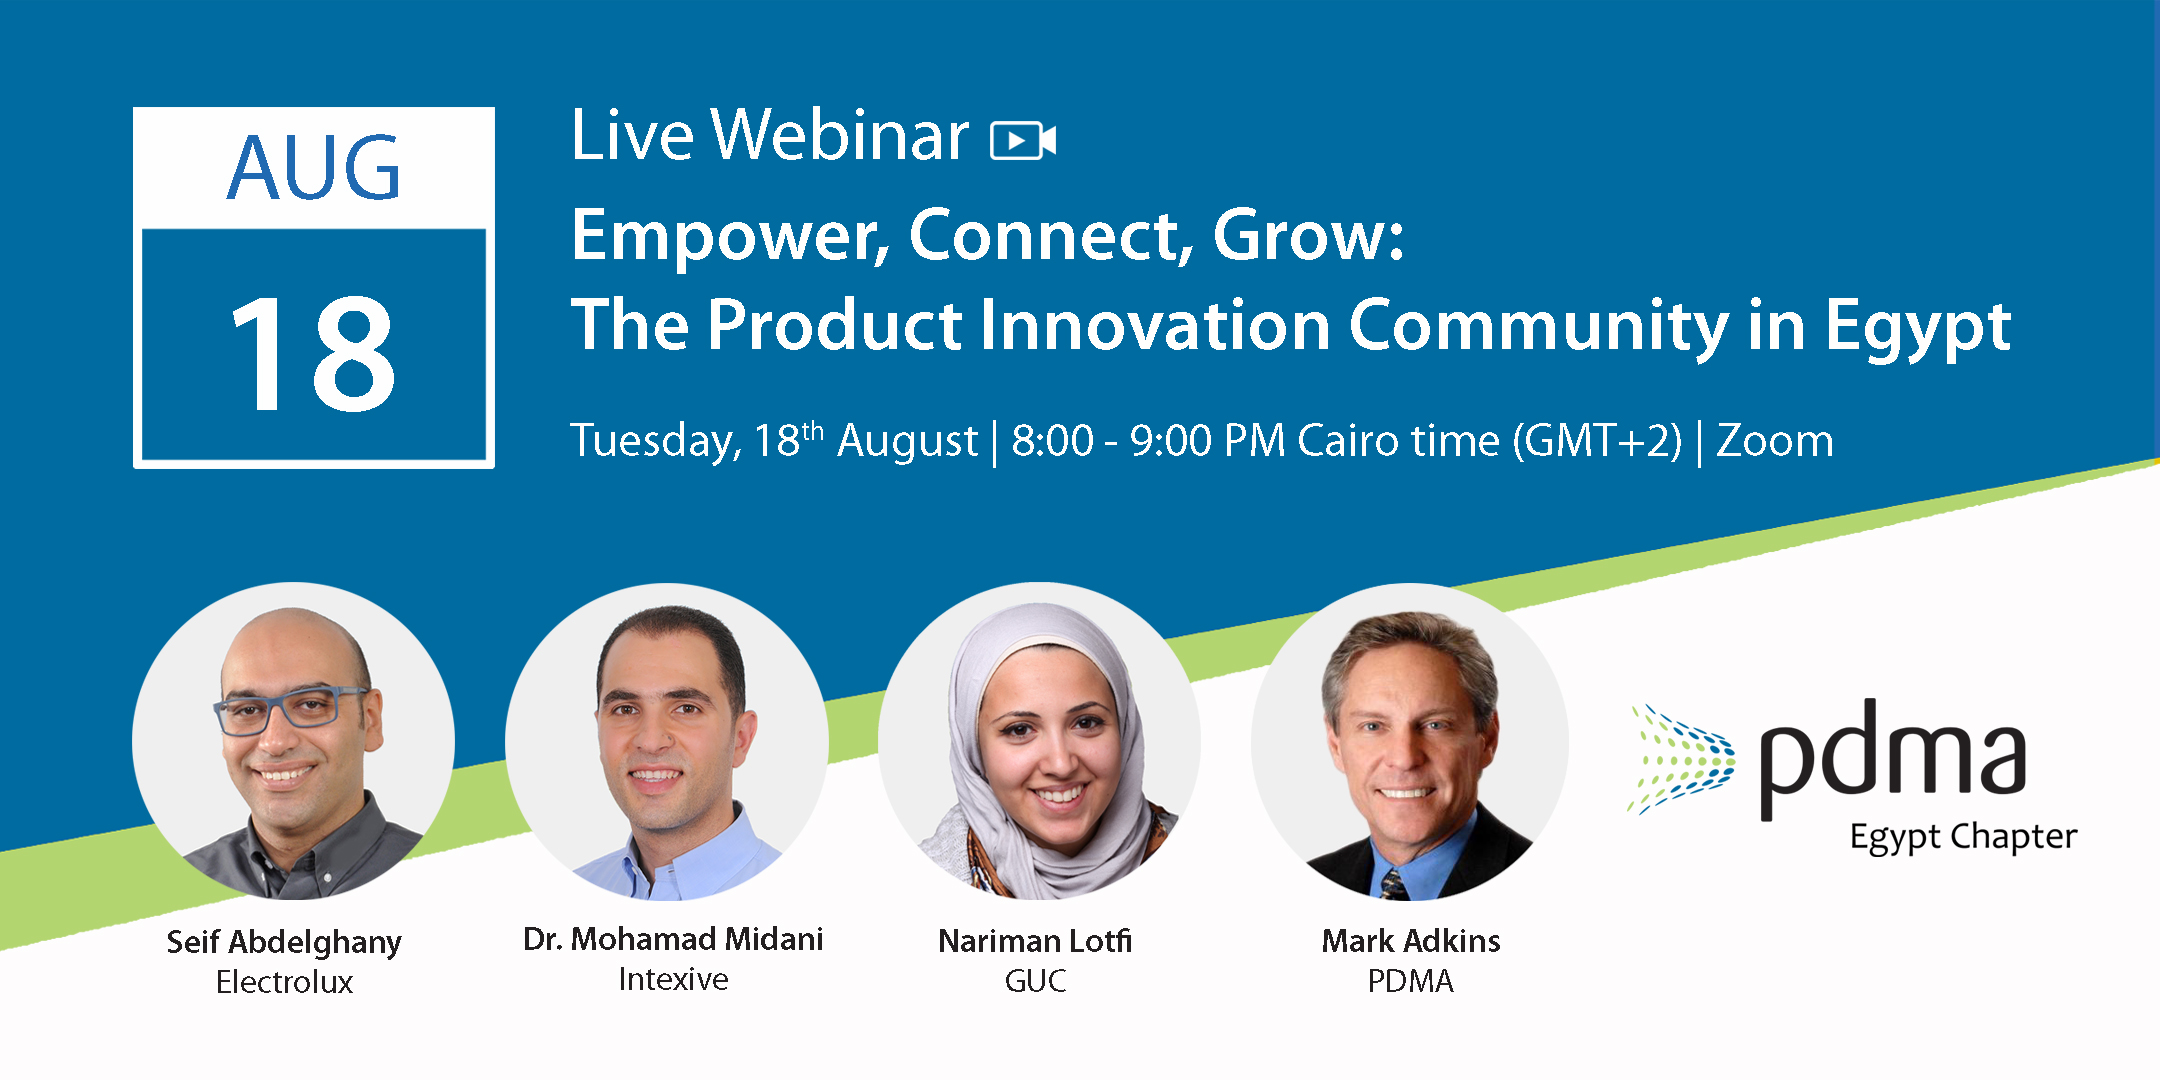 Empower, Connect, Grow: The Product Innovation Community in Egypt